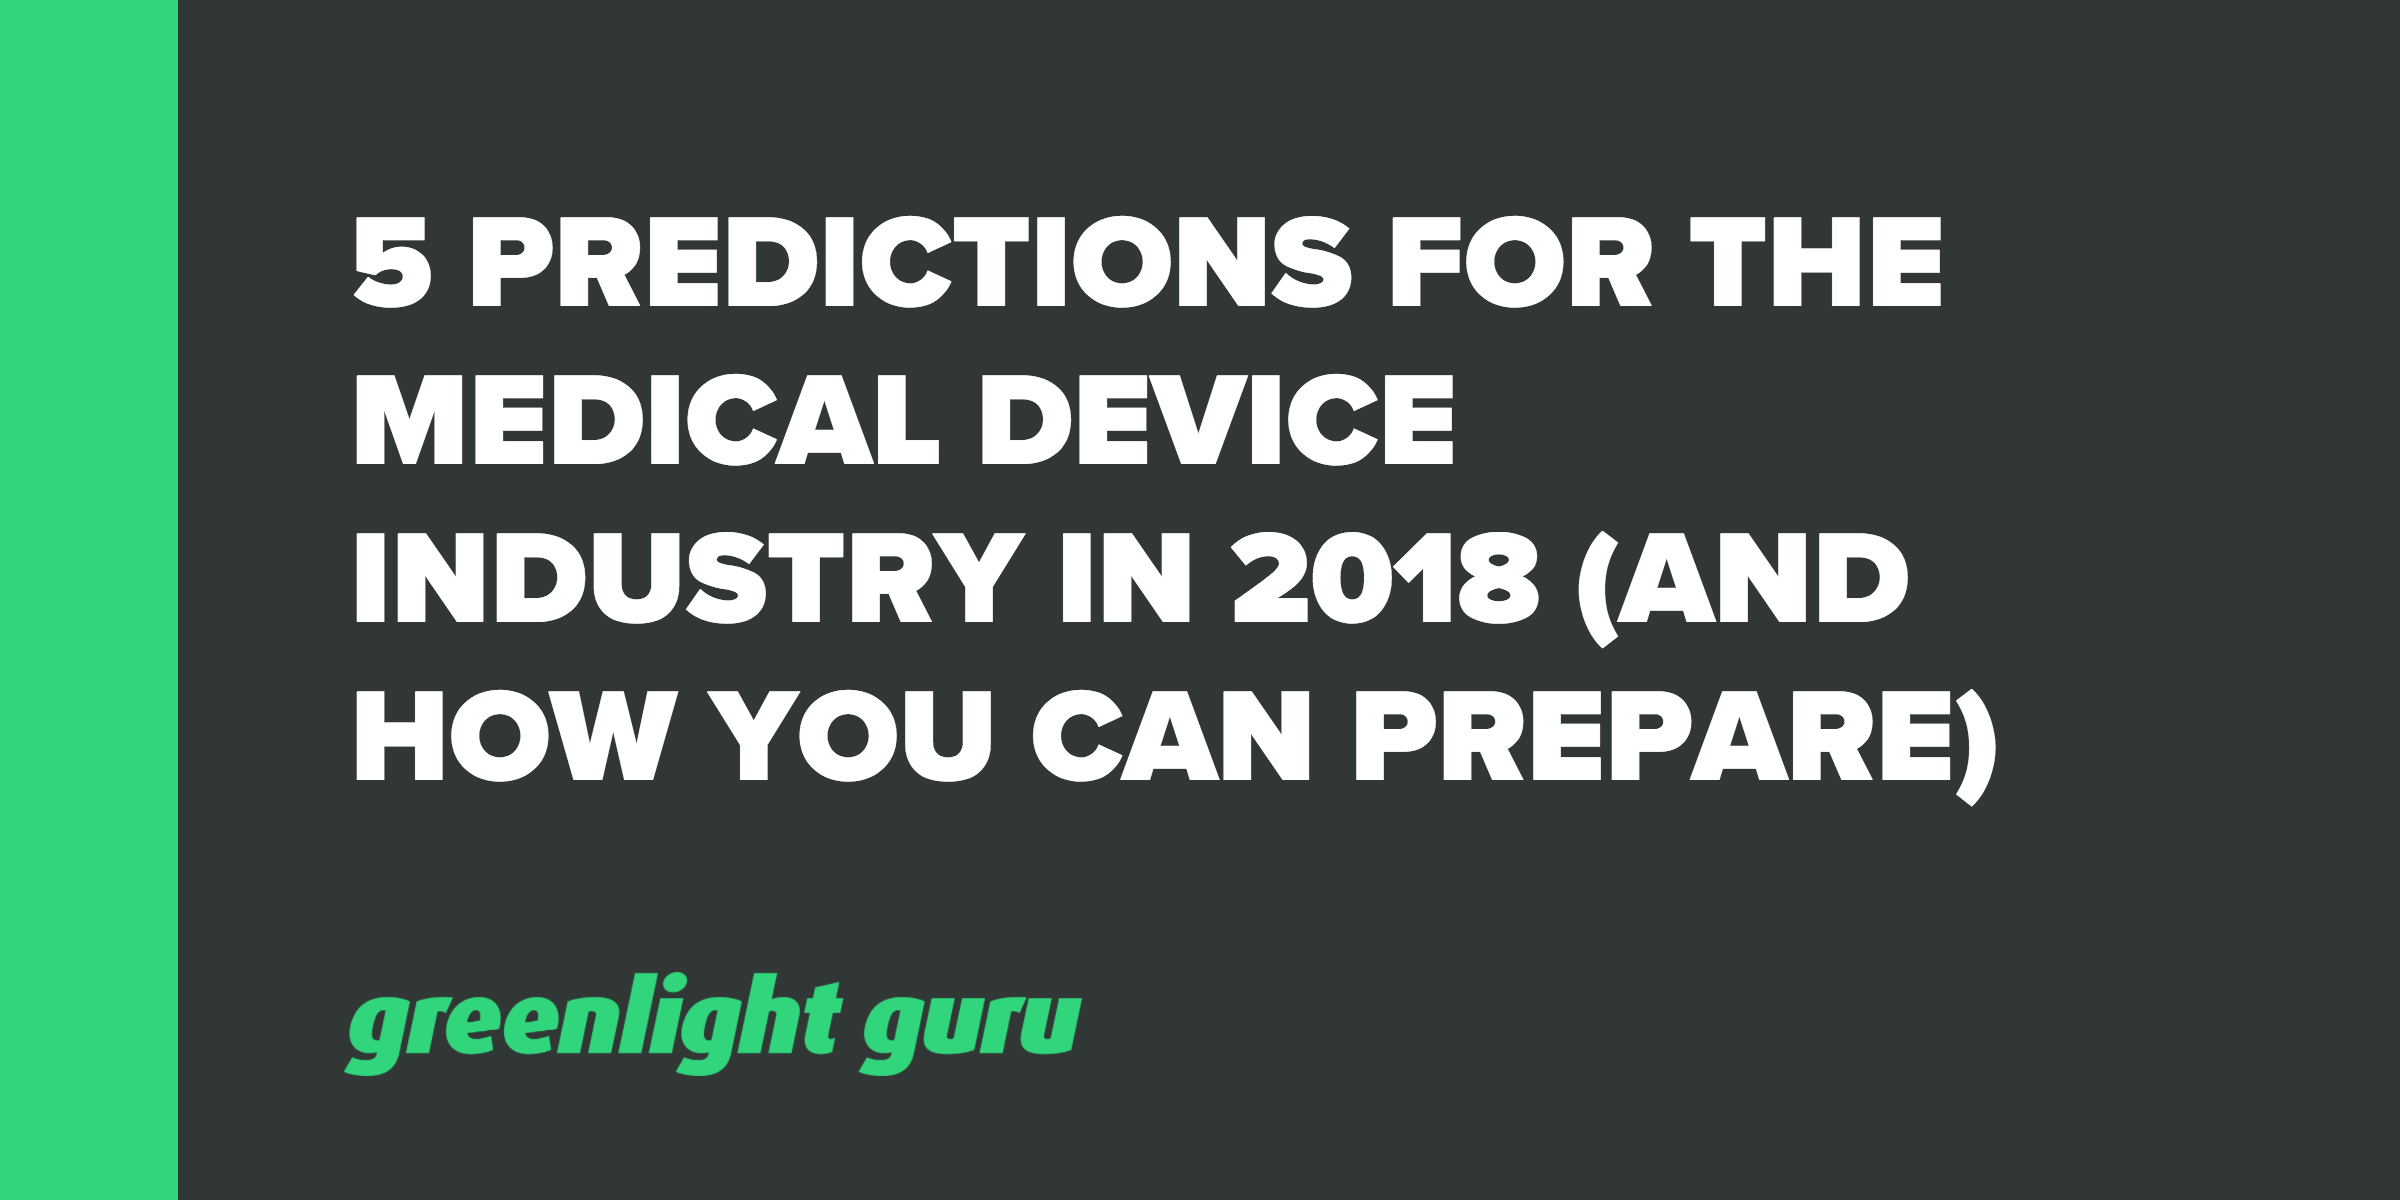 5 Predictions for the Medical Device Industry in 2018 (And How You Can Prepare) - Featured Image